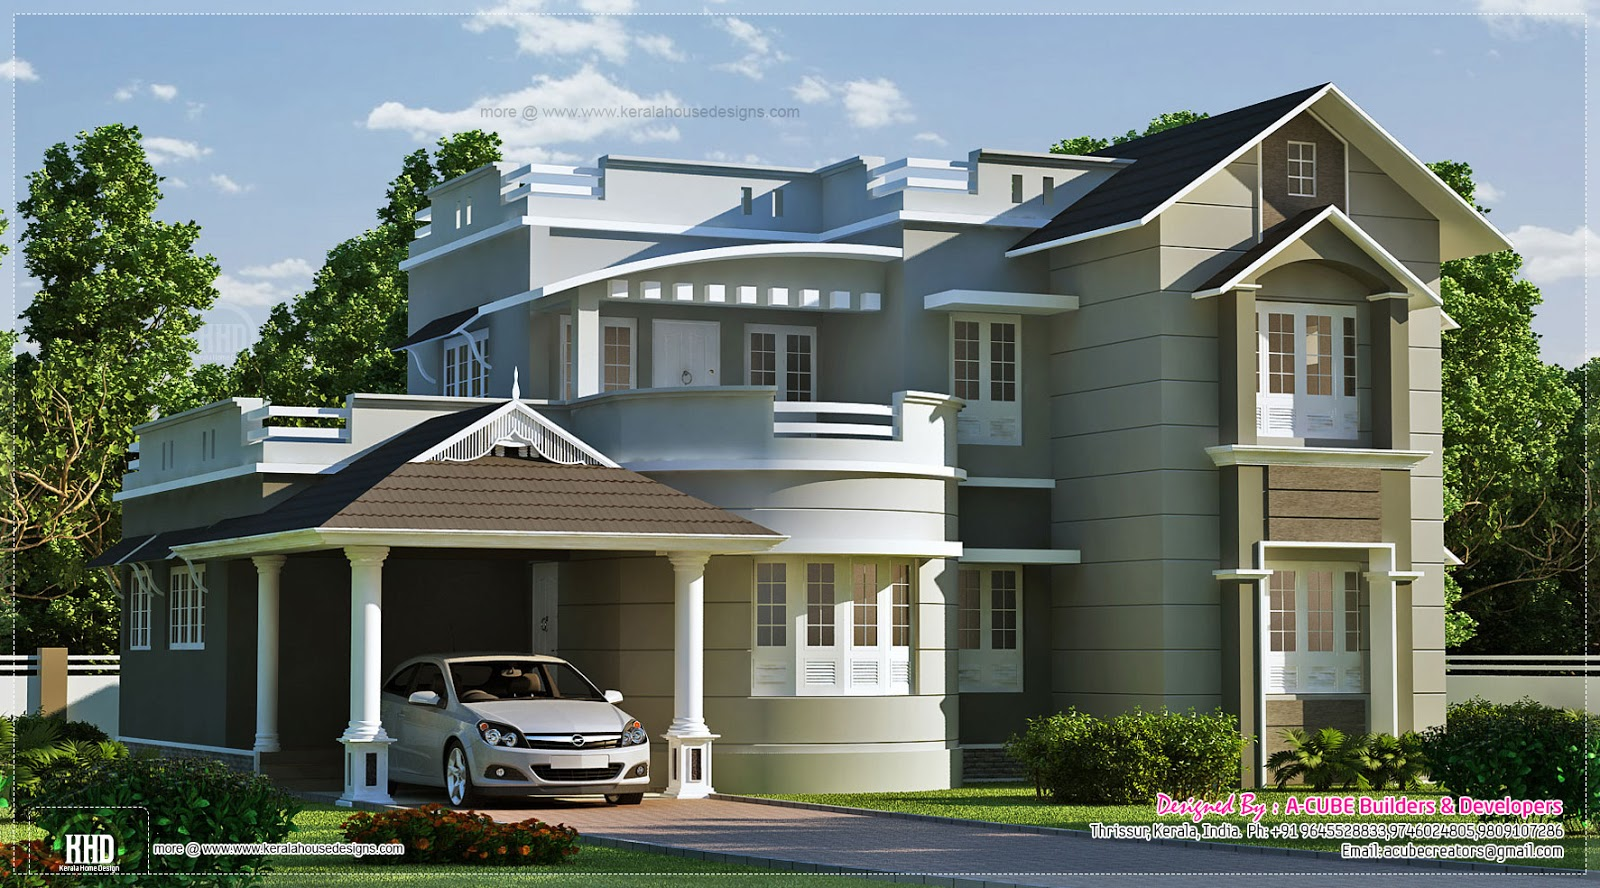 New style home exterior in 1800 kerala home for Kerala style home designs and elevations